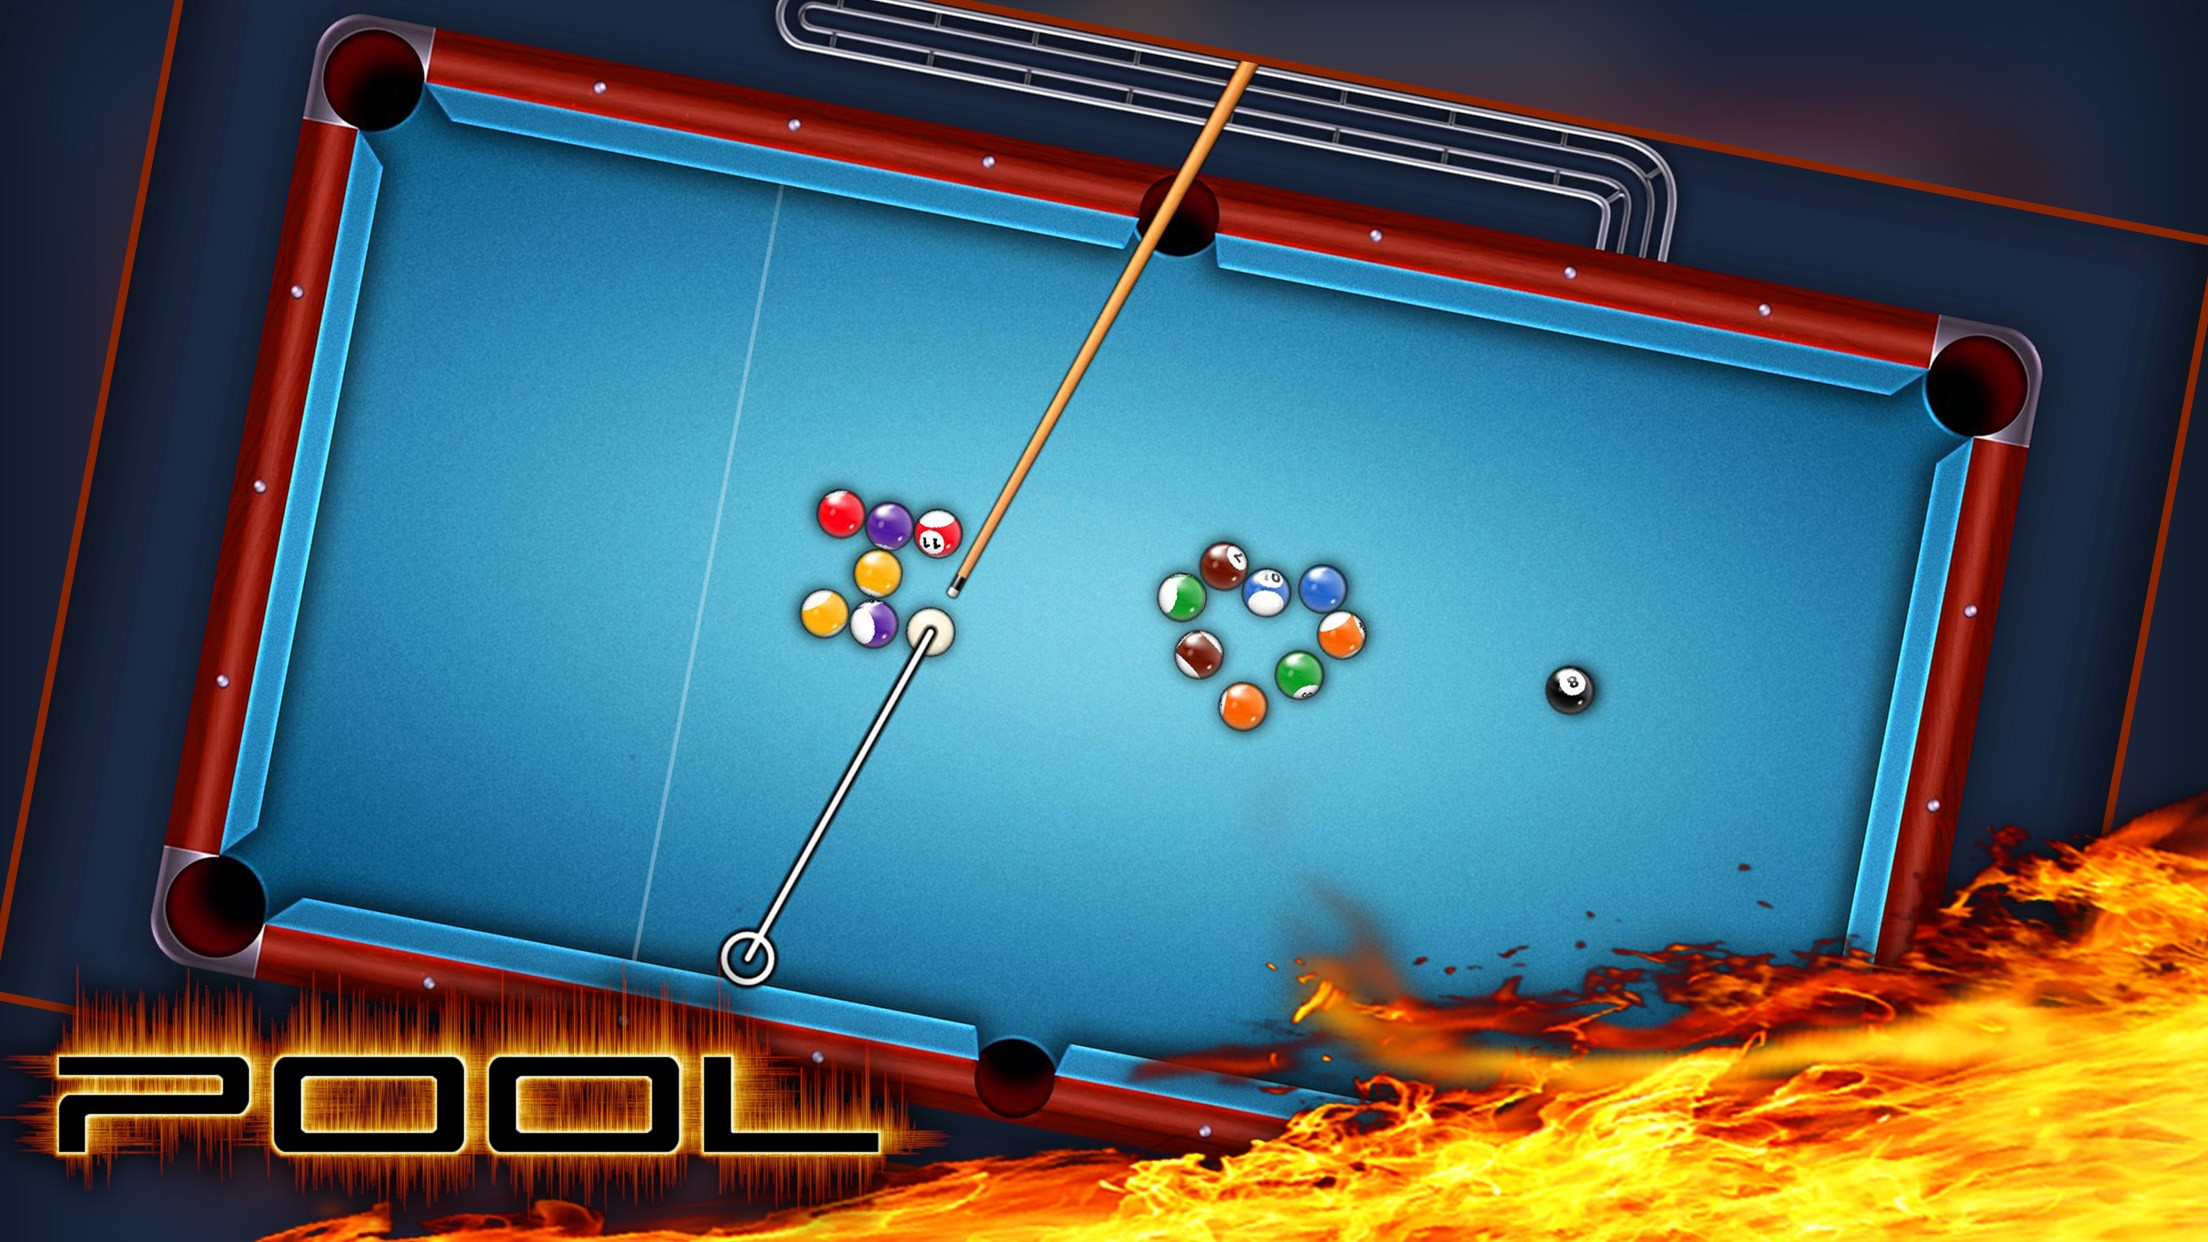 8 Ball Mini Pool Pro